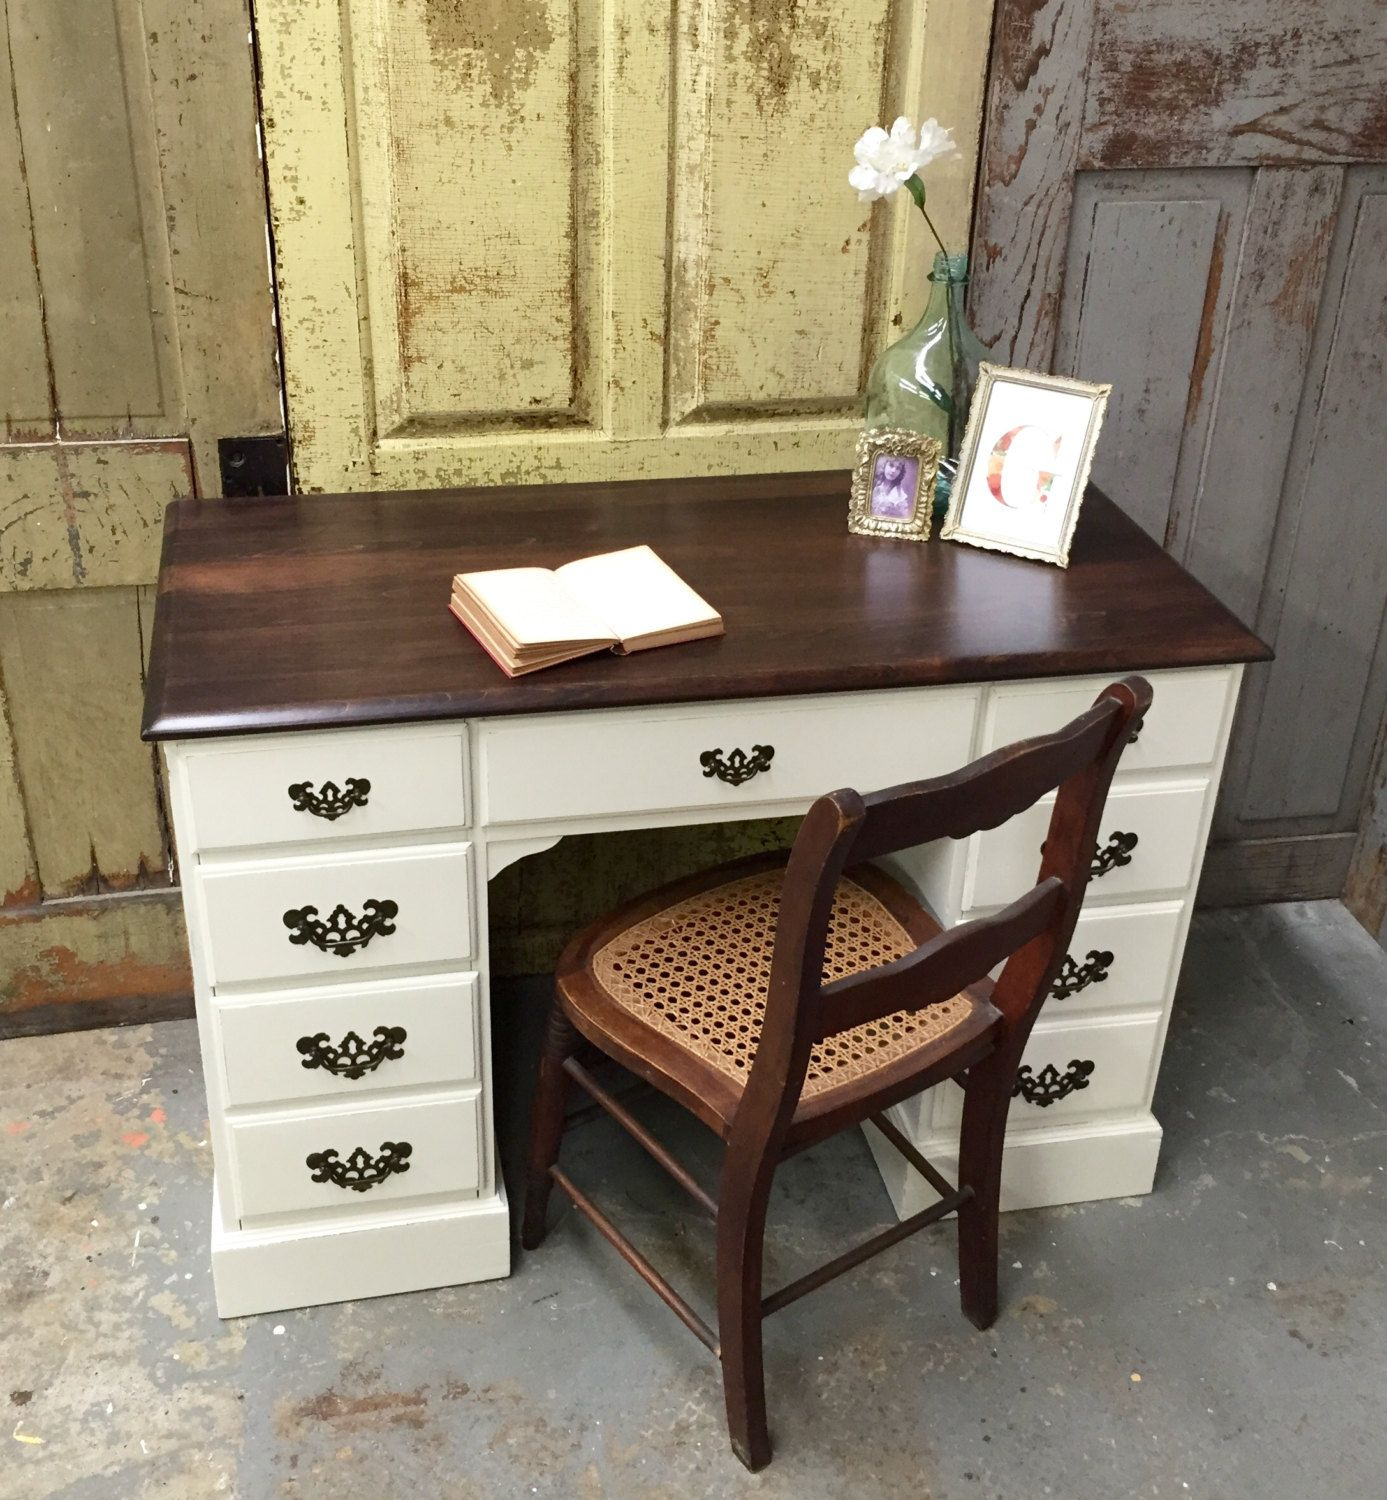 Vintage Writing Desk White Wooden Desk Painted Furniture Distressed Furniture White Wooden Desk Vintage Writing Desk Wooden Desk